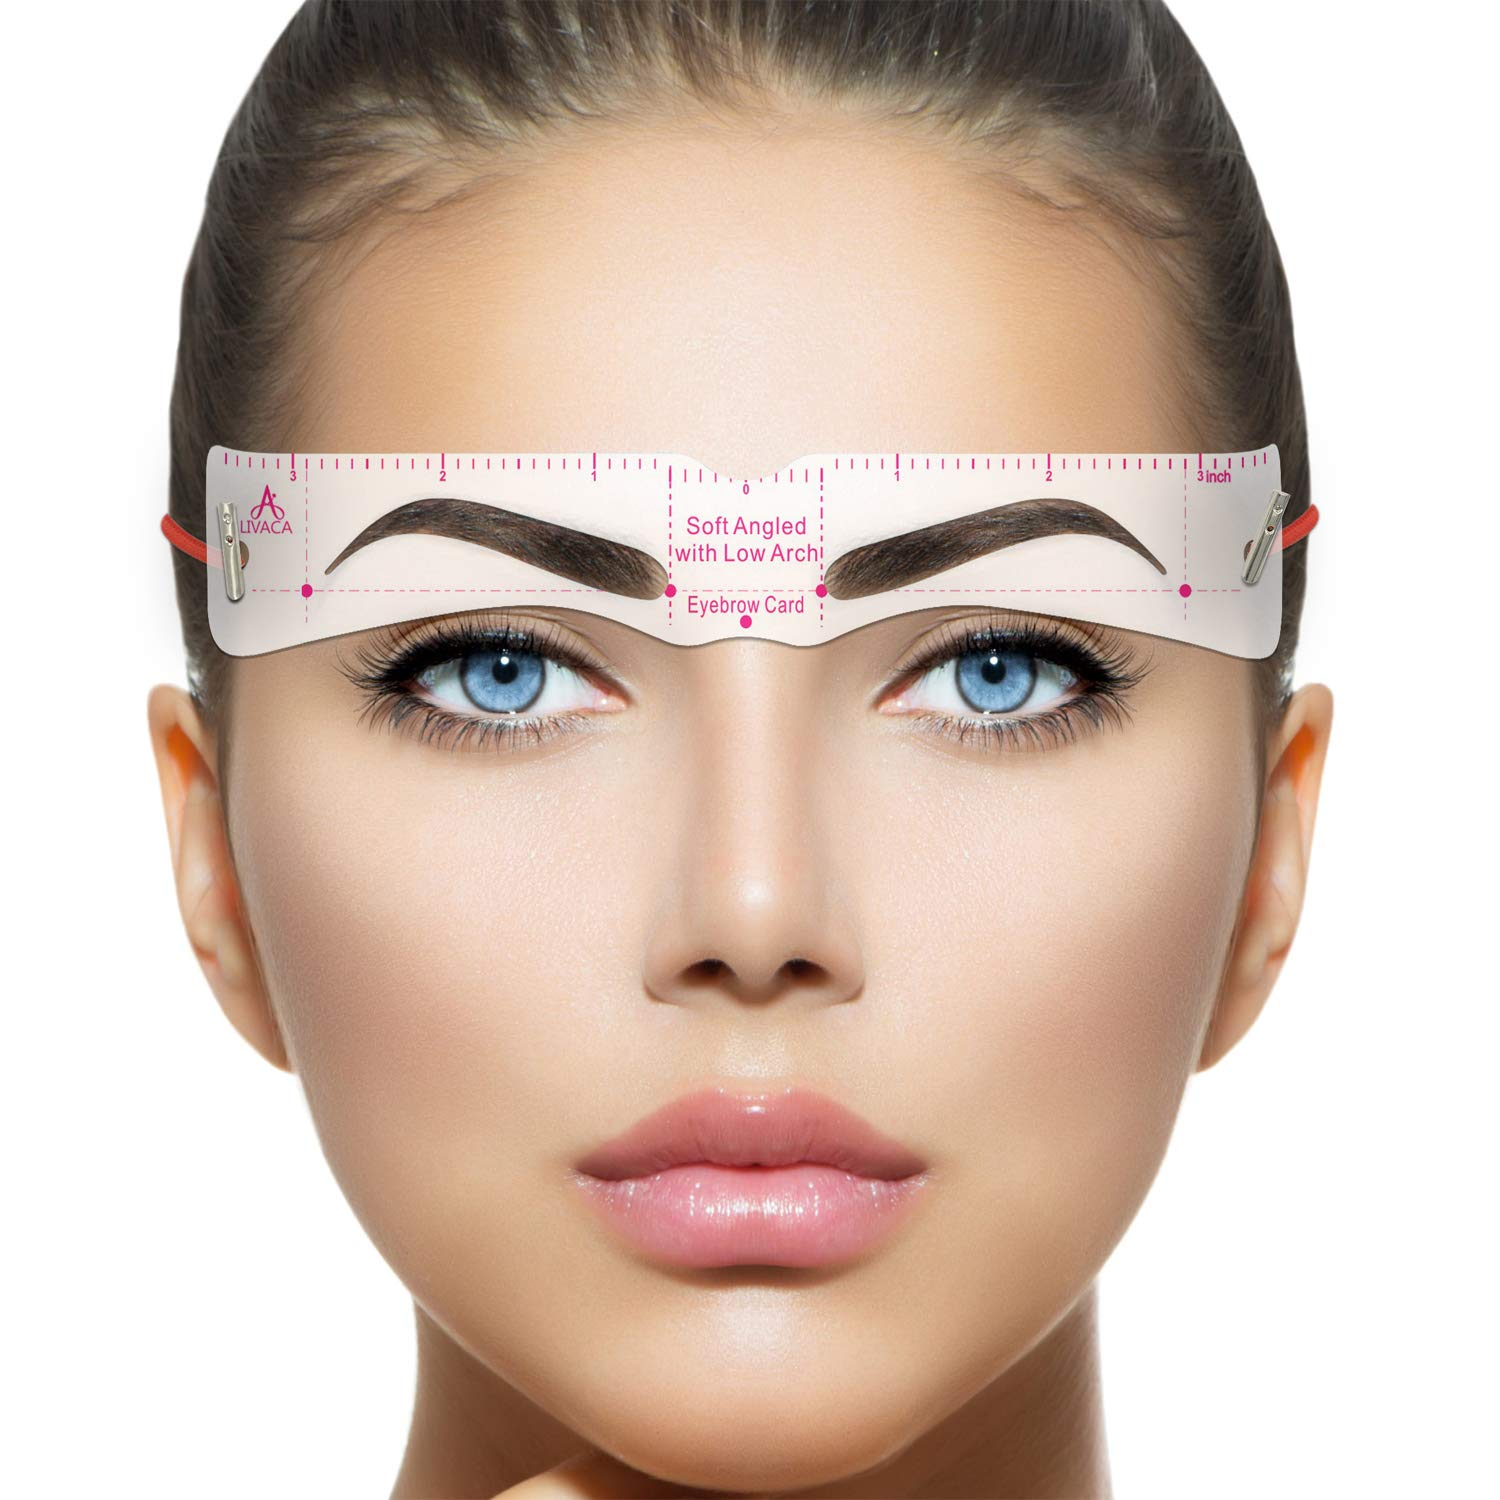 LIVACA Eyebrow Stencils, Reusable Eyebrow Template